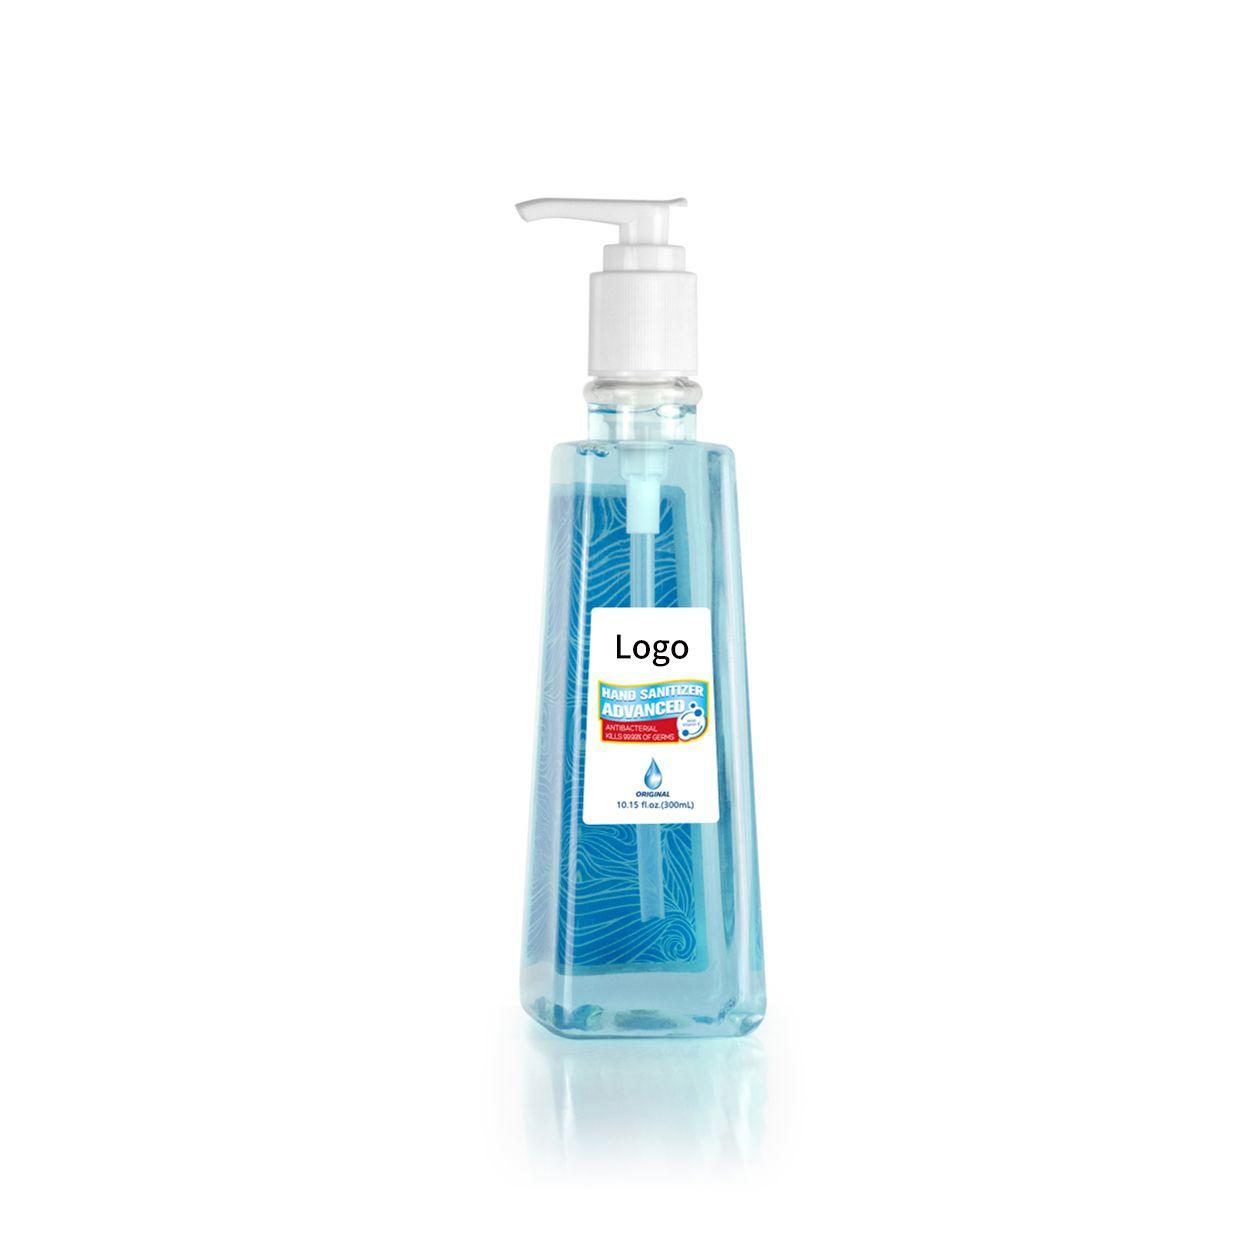 300ml alcohol based hand rub sanitizer